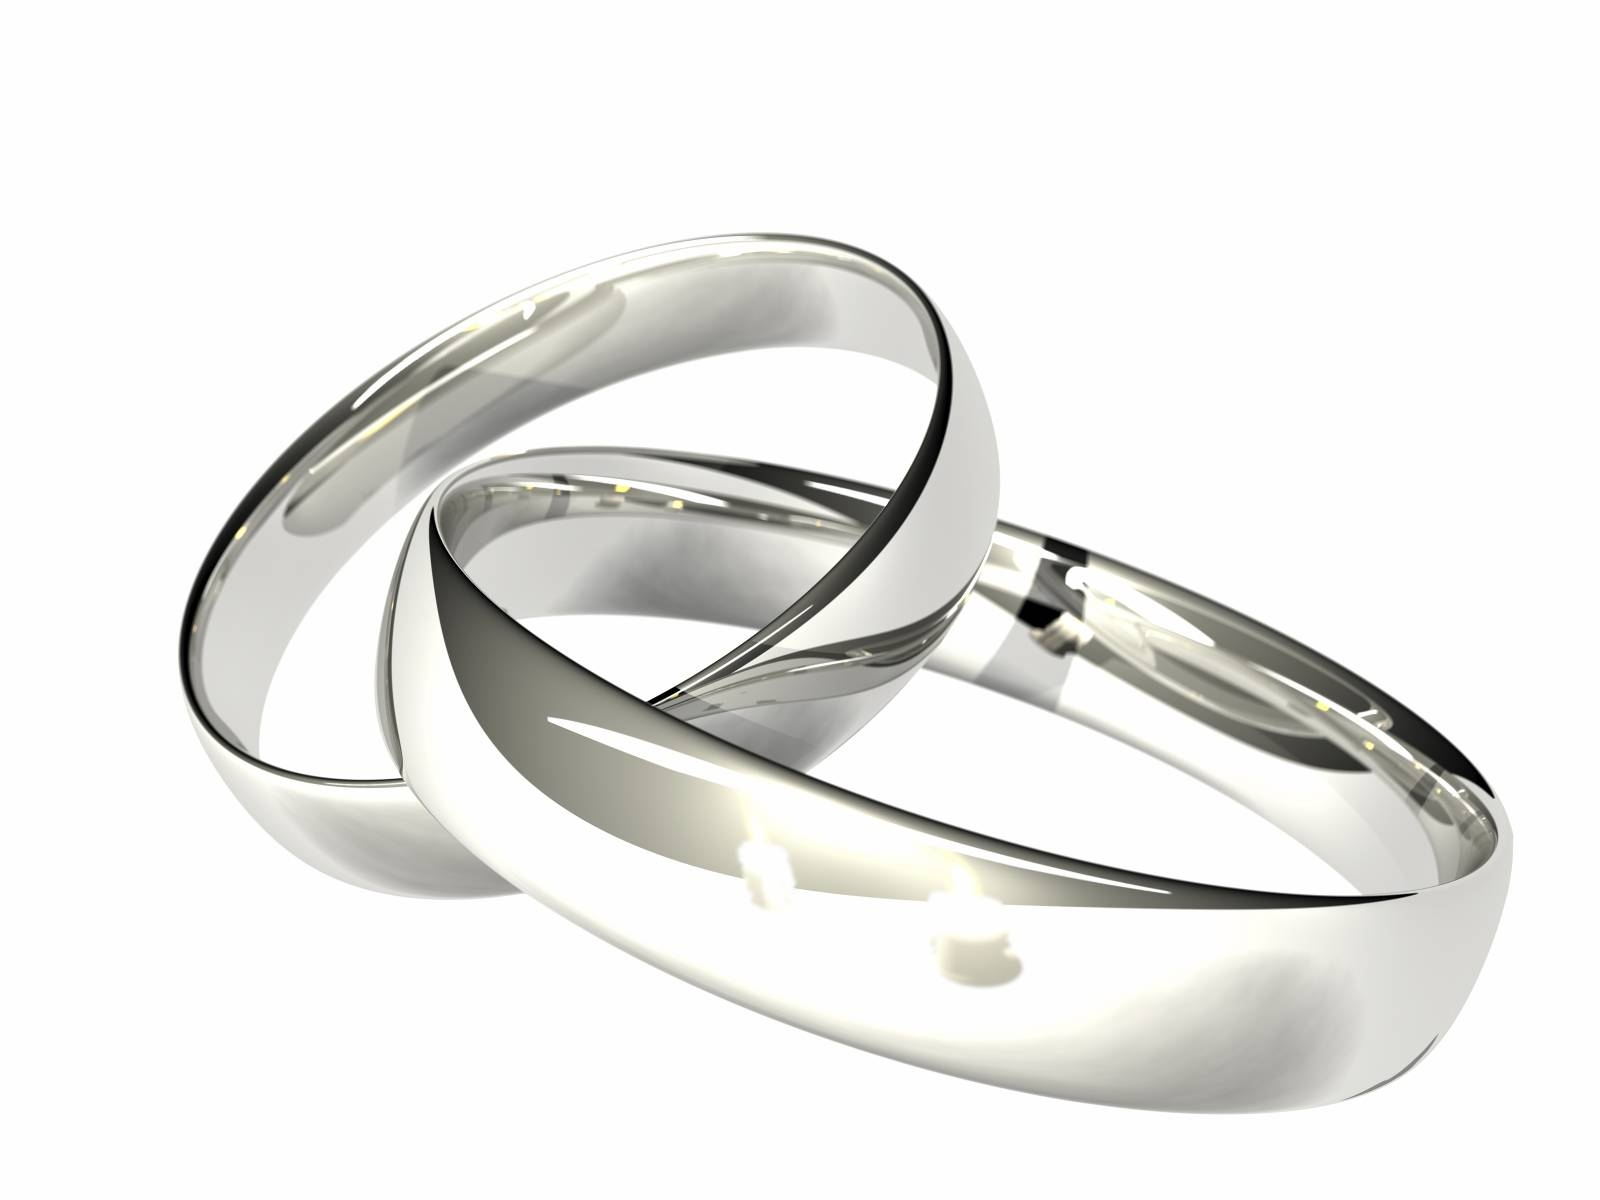 Wedding Pictures Wedding Photos Silver Wedding Rings Pictures For Silver Wedding Bands (View 15 of 15)